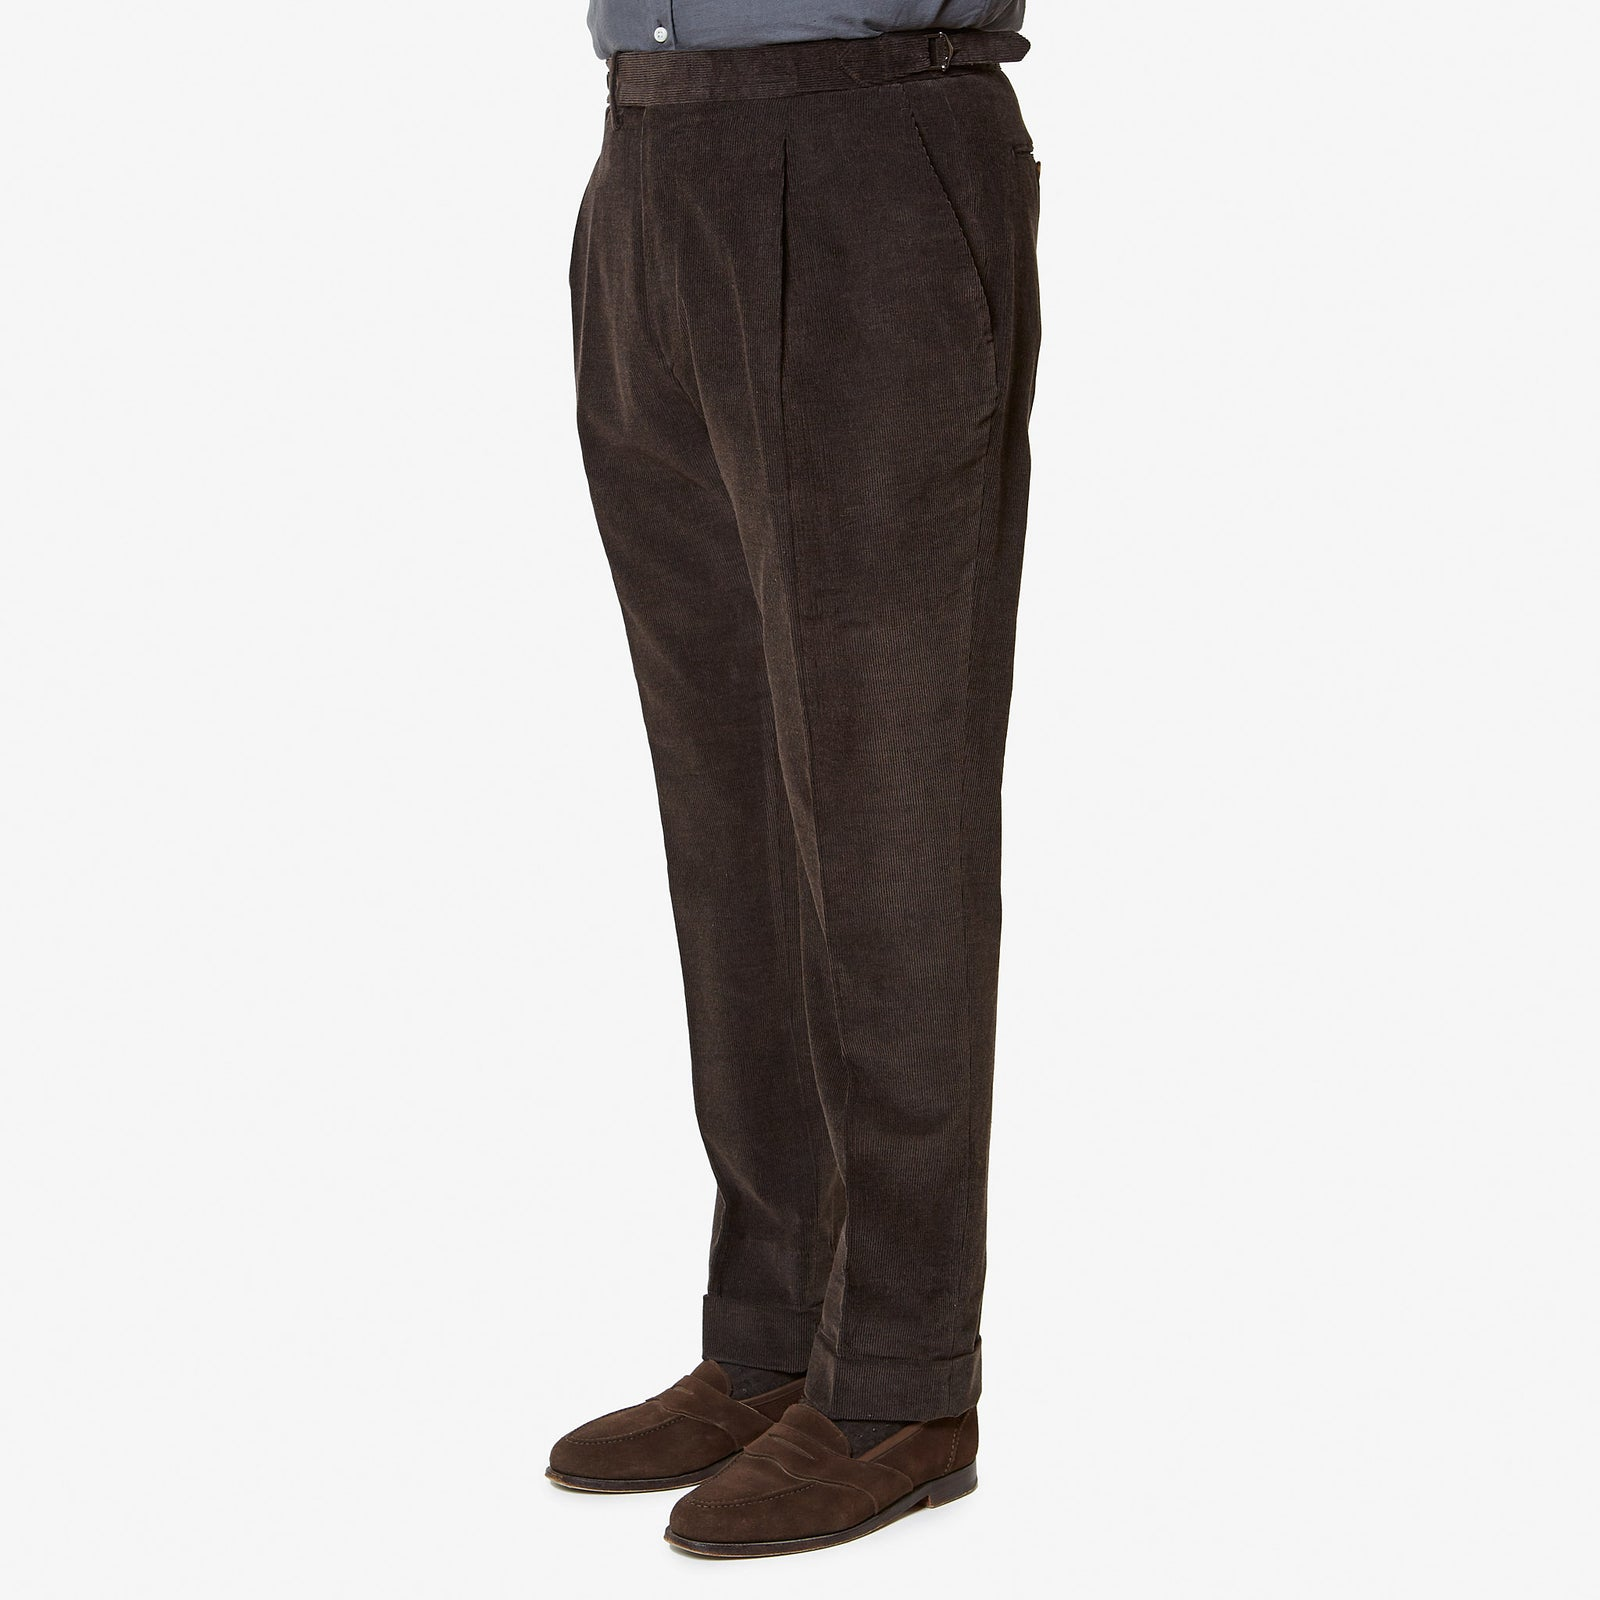 Tailored Trouser Brown Corduroy